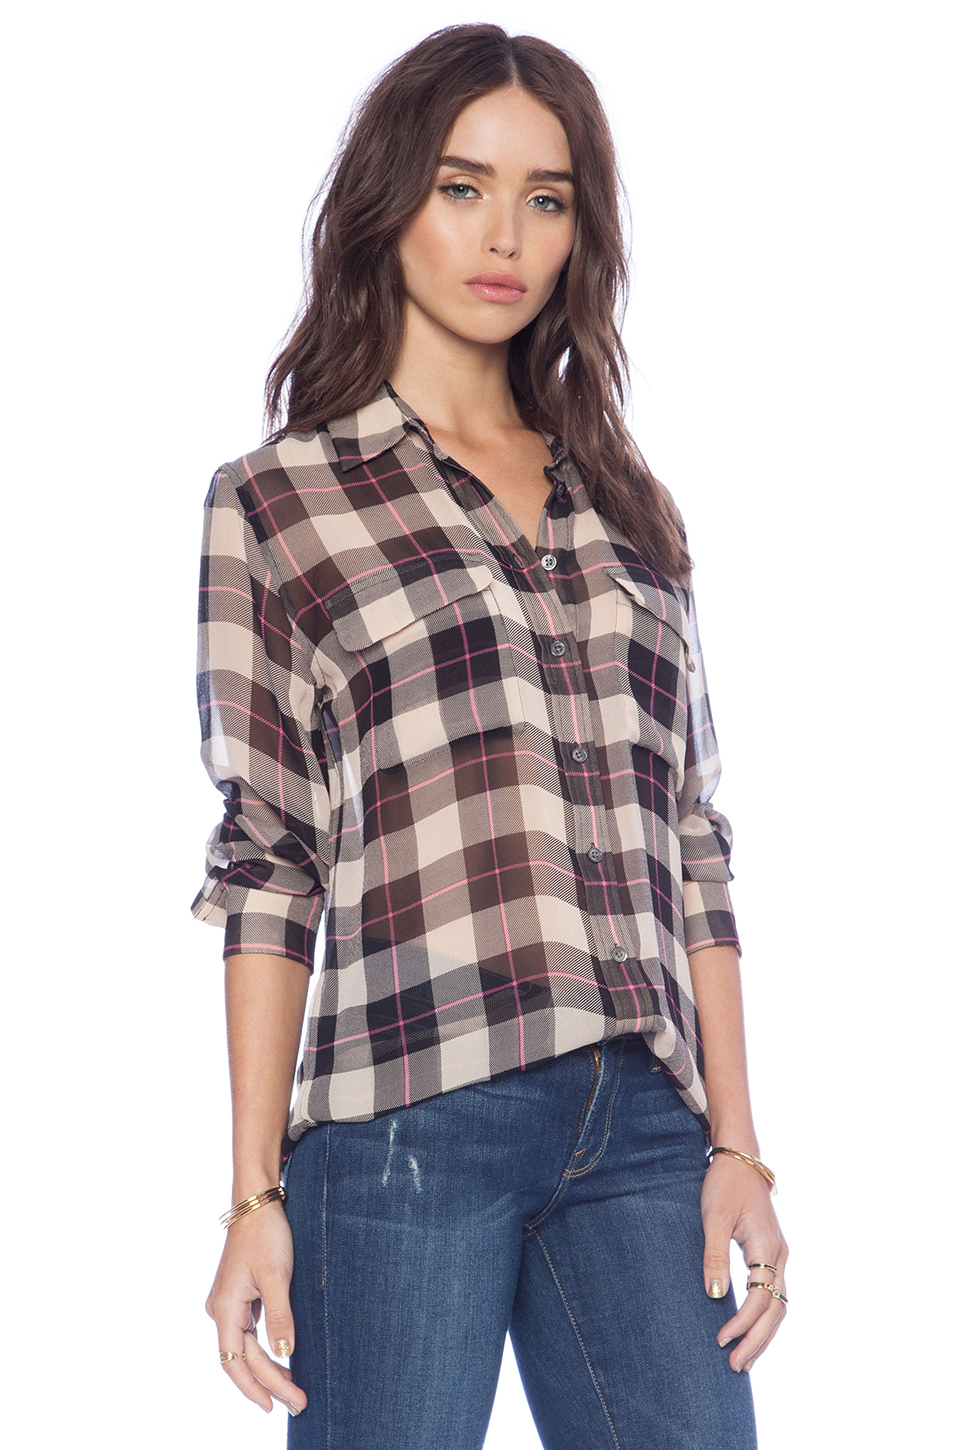 Find great deals on eBay for revolve clothing. Shop with confidence.